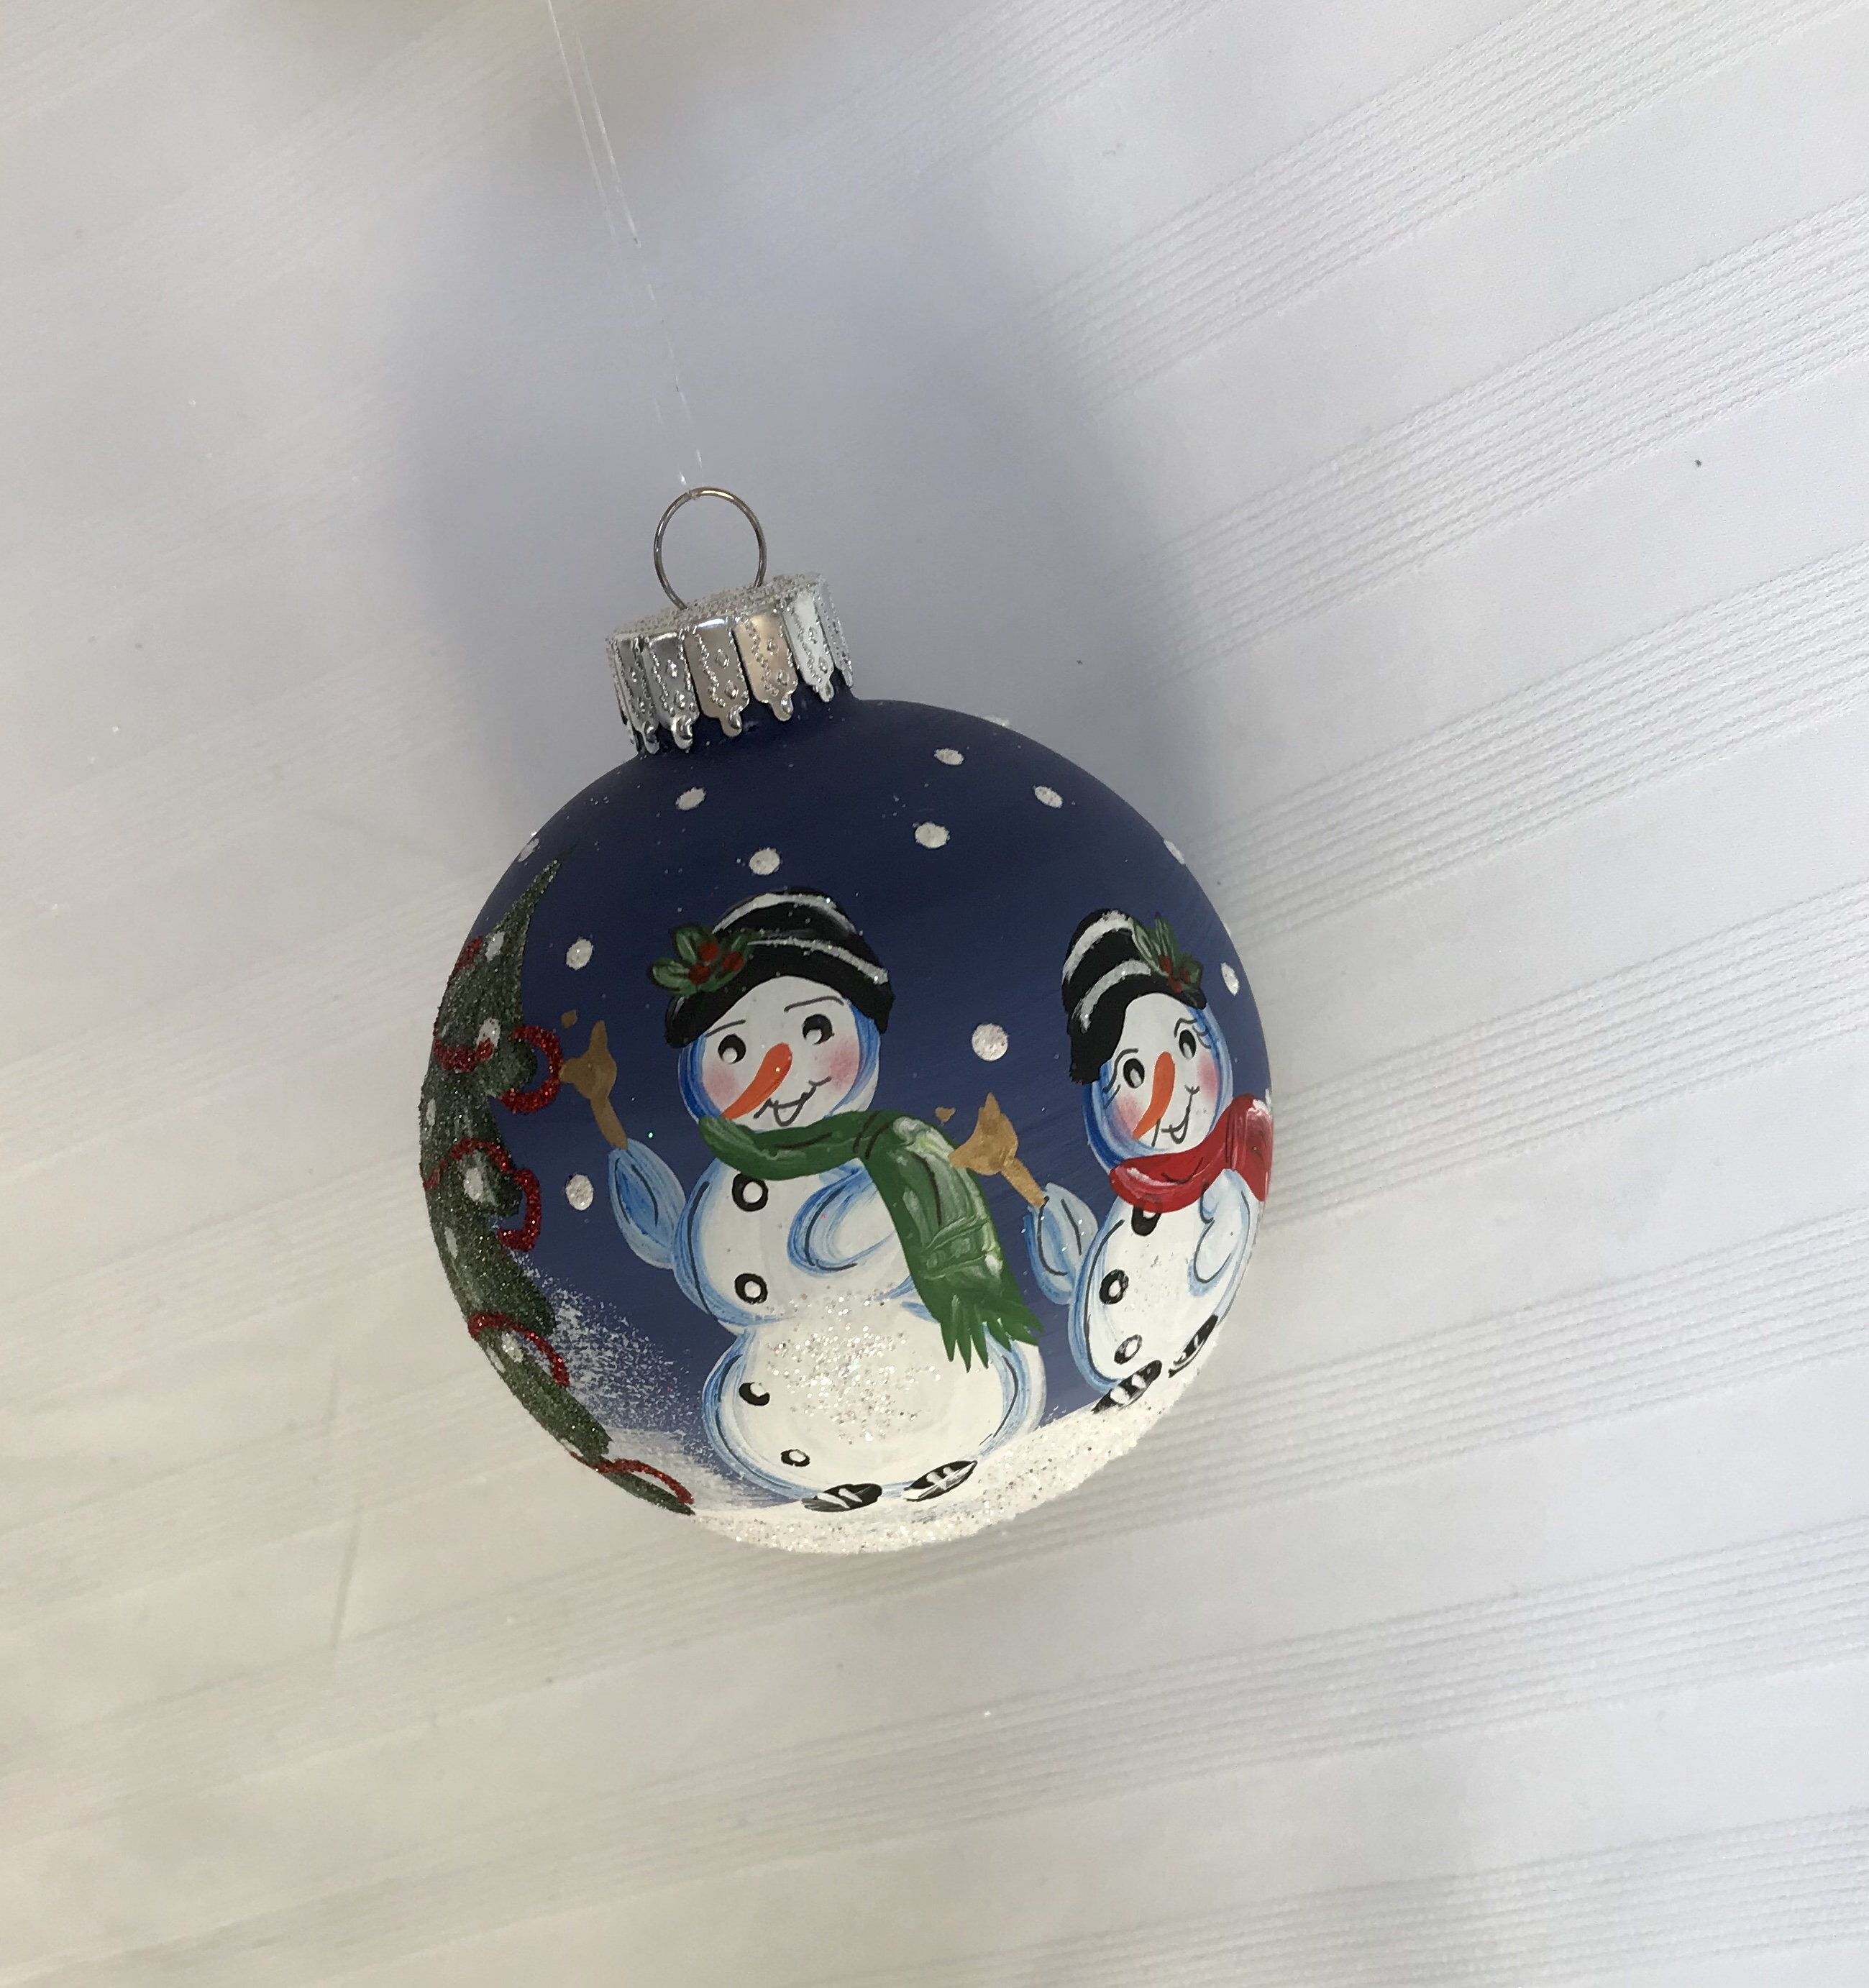 Hand Painted Snowman Christmas Ornament Christmas Gift Etsy Hand Painted Ornaments Snowman Christmas Ornaments Handpainted Christmas Ornaments